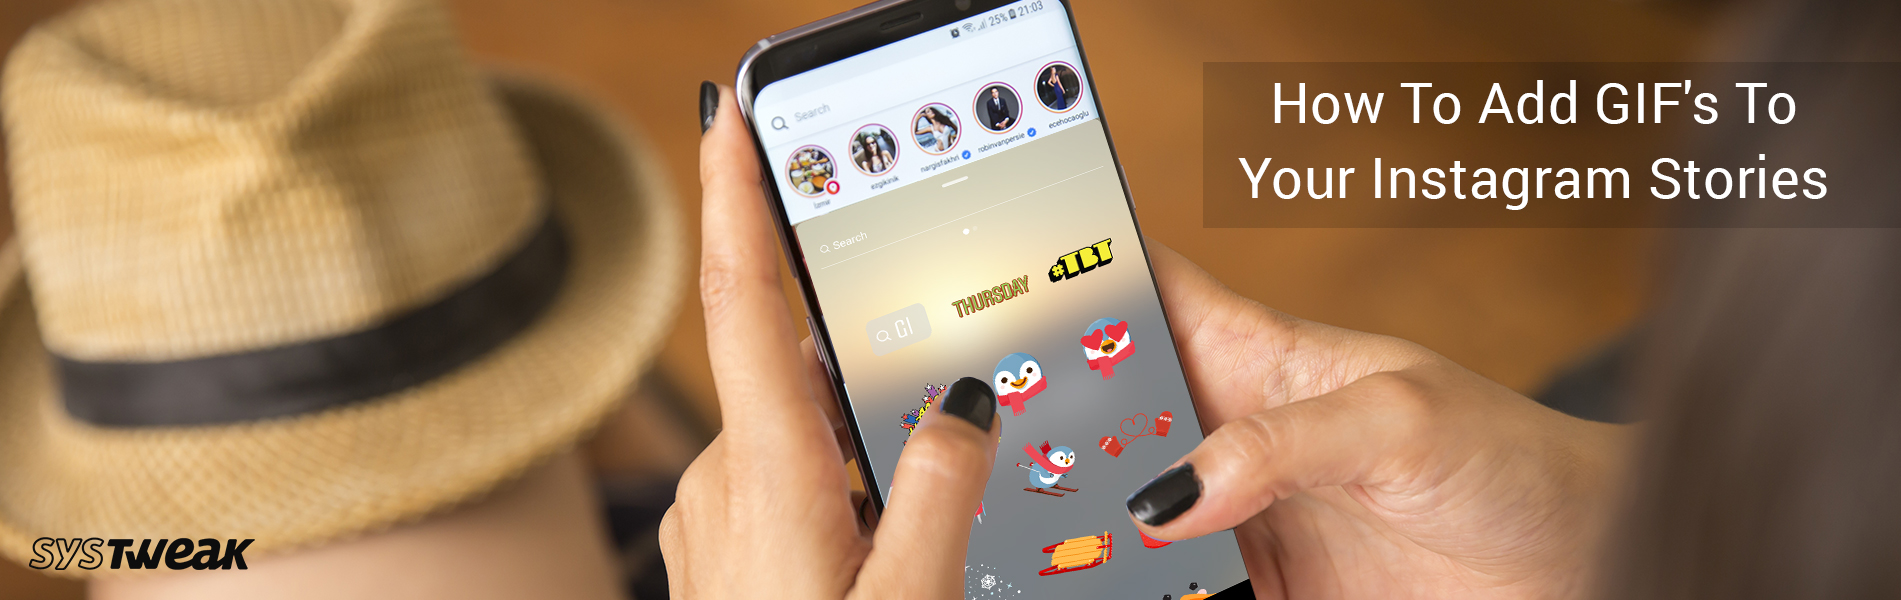 How To Create GIF's For Instagram Stories